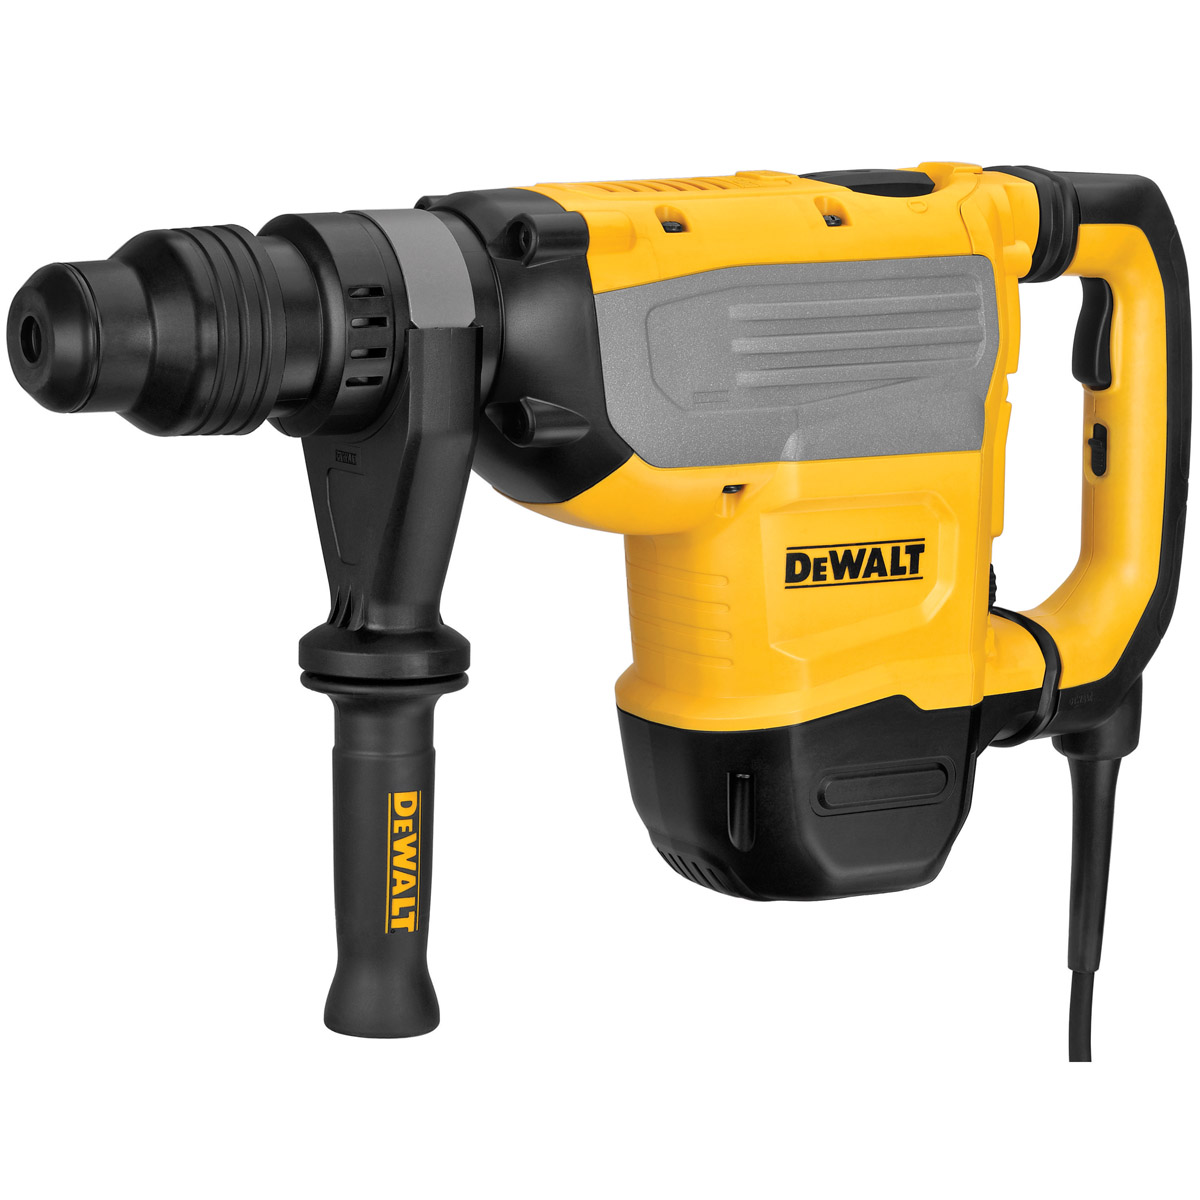 DeWALT D25733K-B5 - 7kg; SDS Max Comb. Hammer with UTC; 48mm; 220V